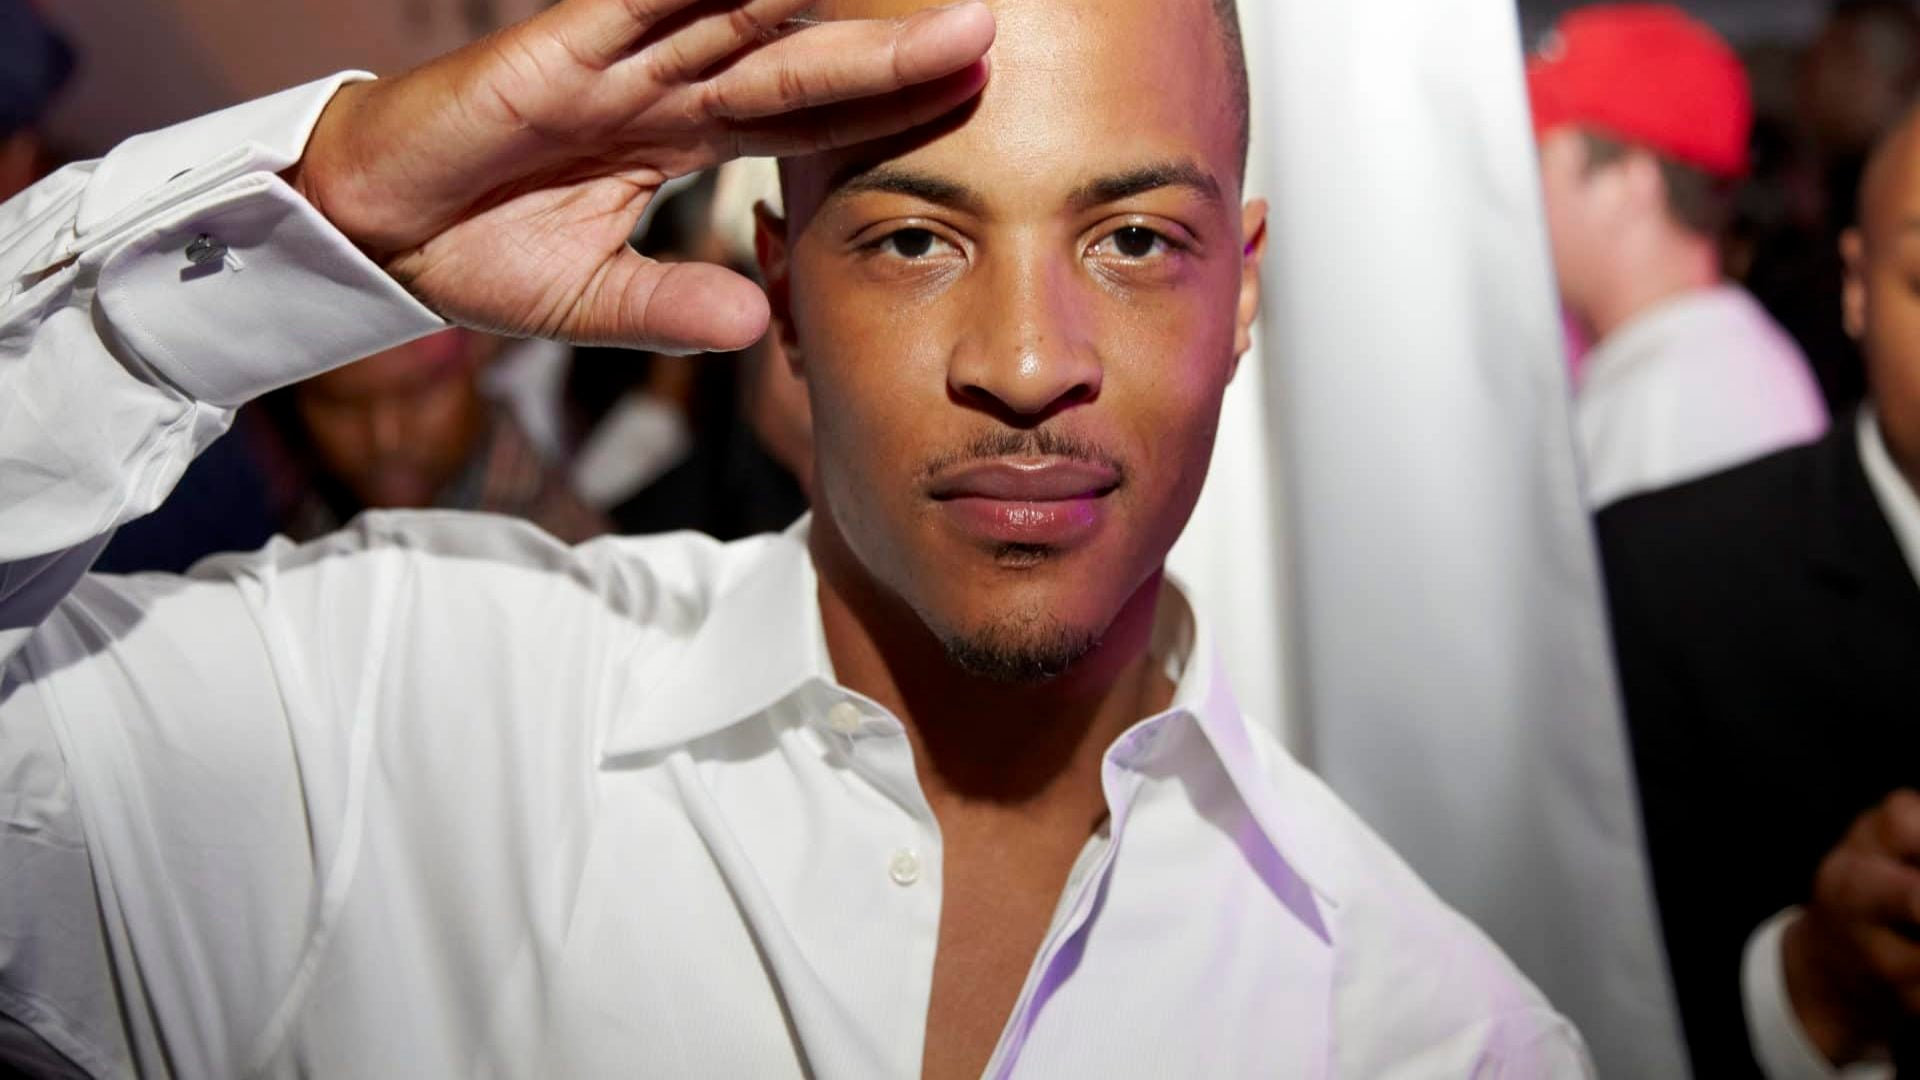 T.I. Helps Raise $120,000 To Bail Out Nonviolent Offenders